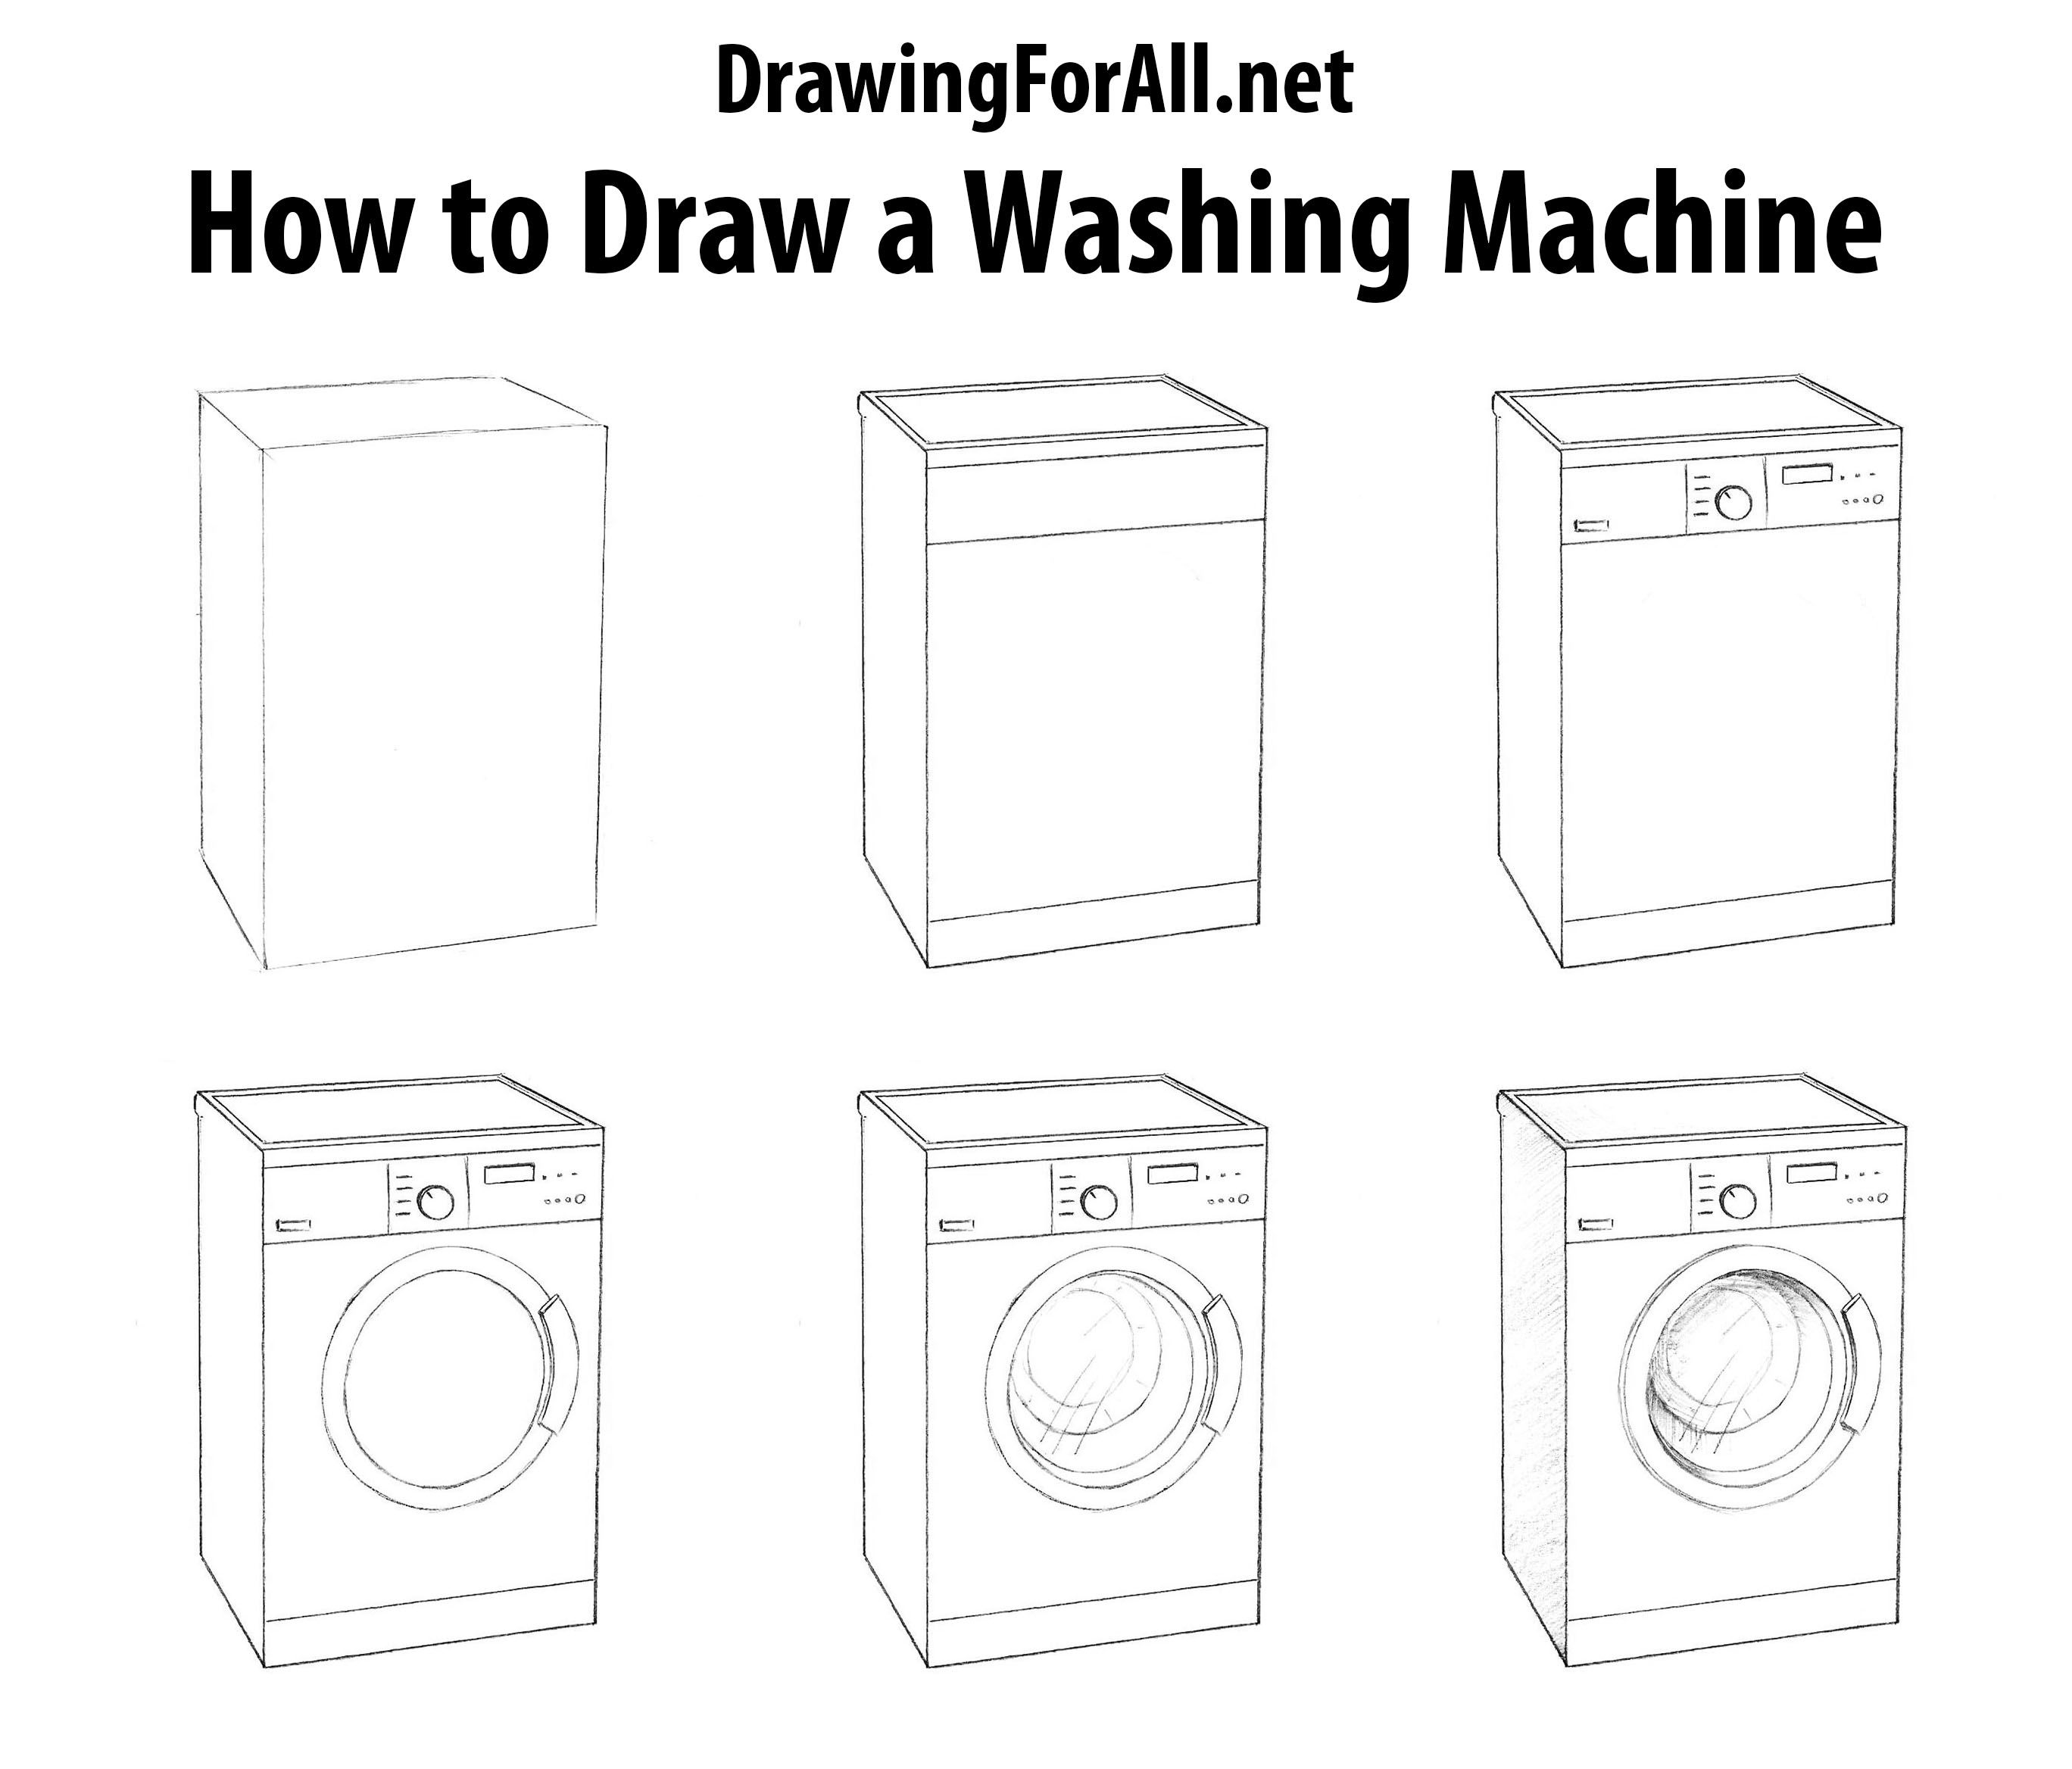 How To Draw A Washing Machine Drawingforall